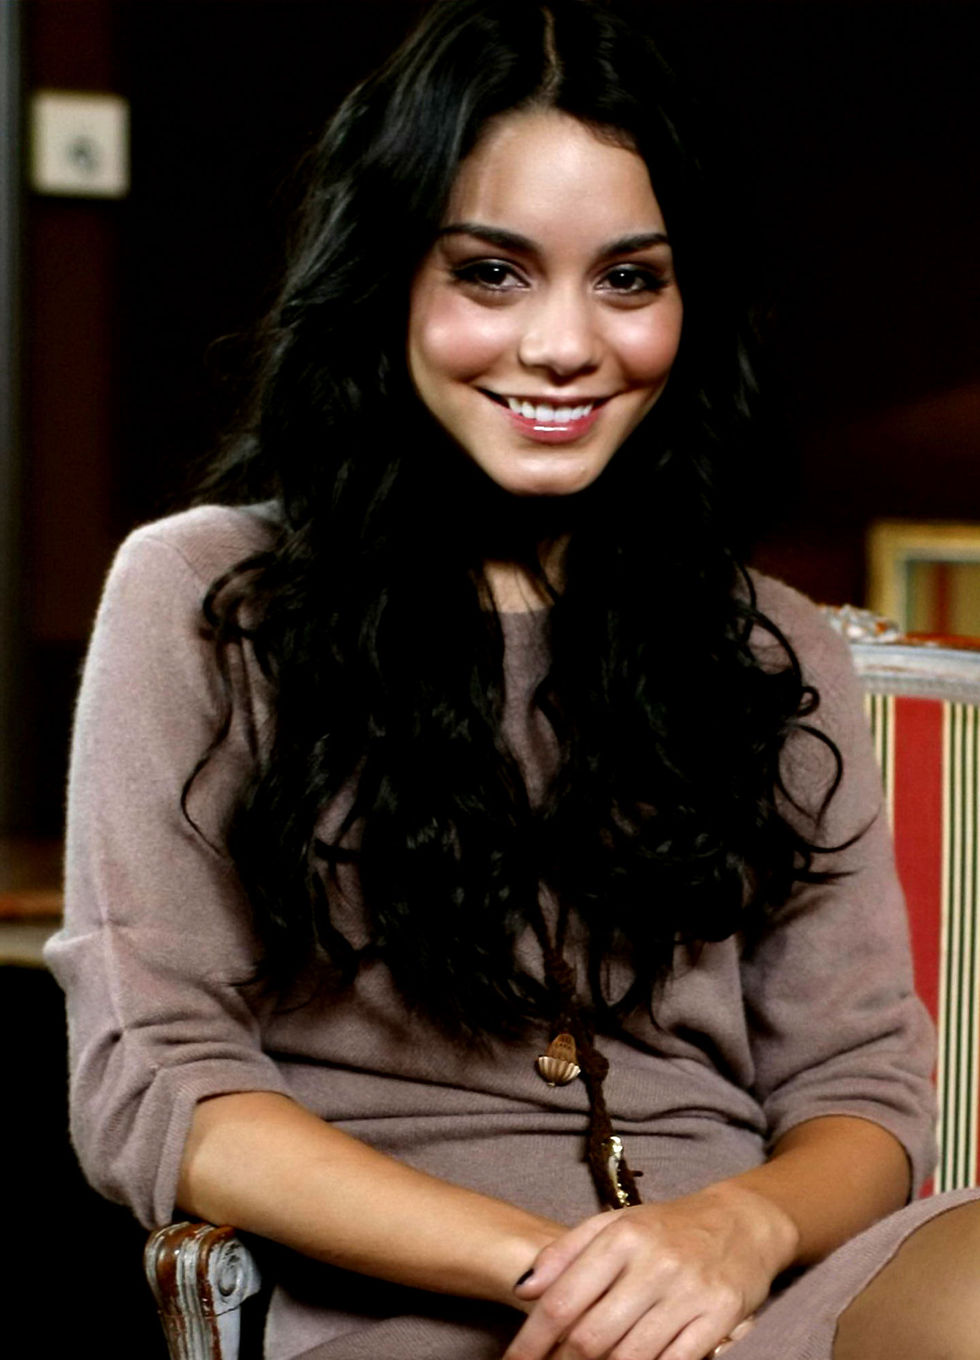 vanessa-hudgens-high-school-musical-3-photocall-in-stockholm-01